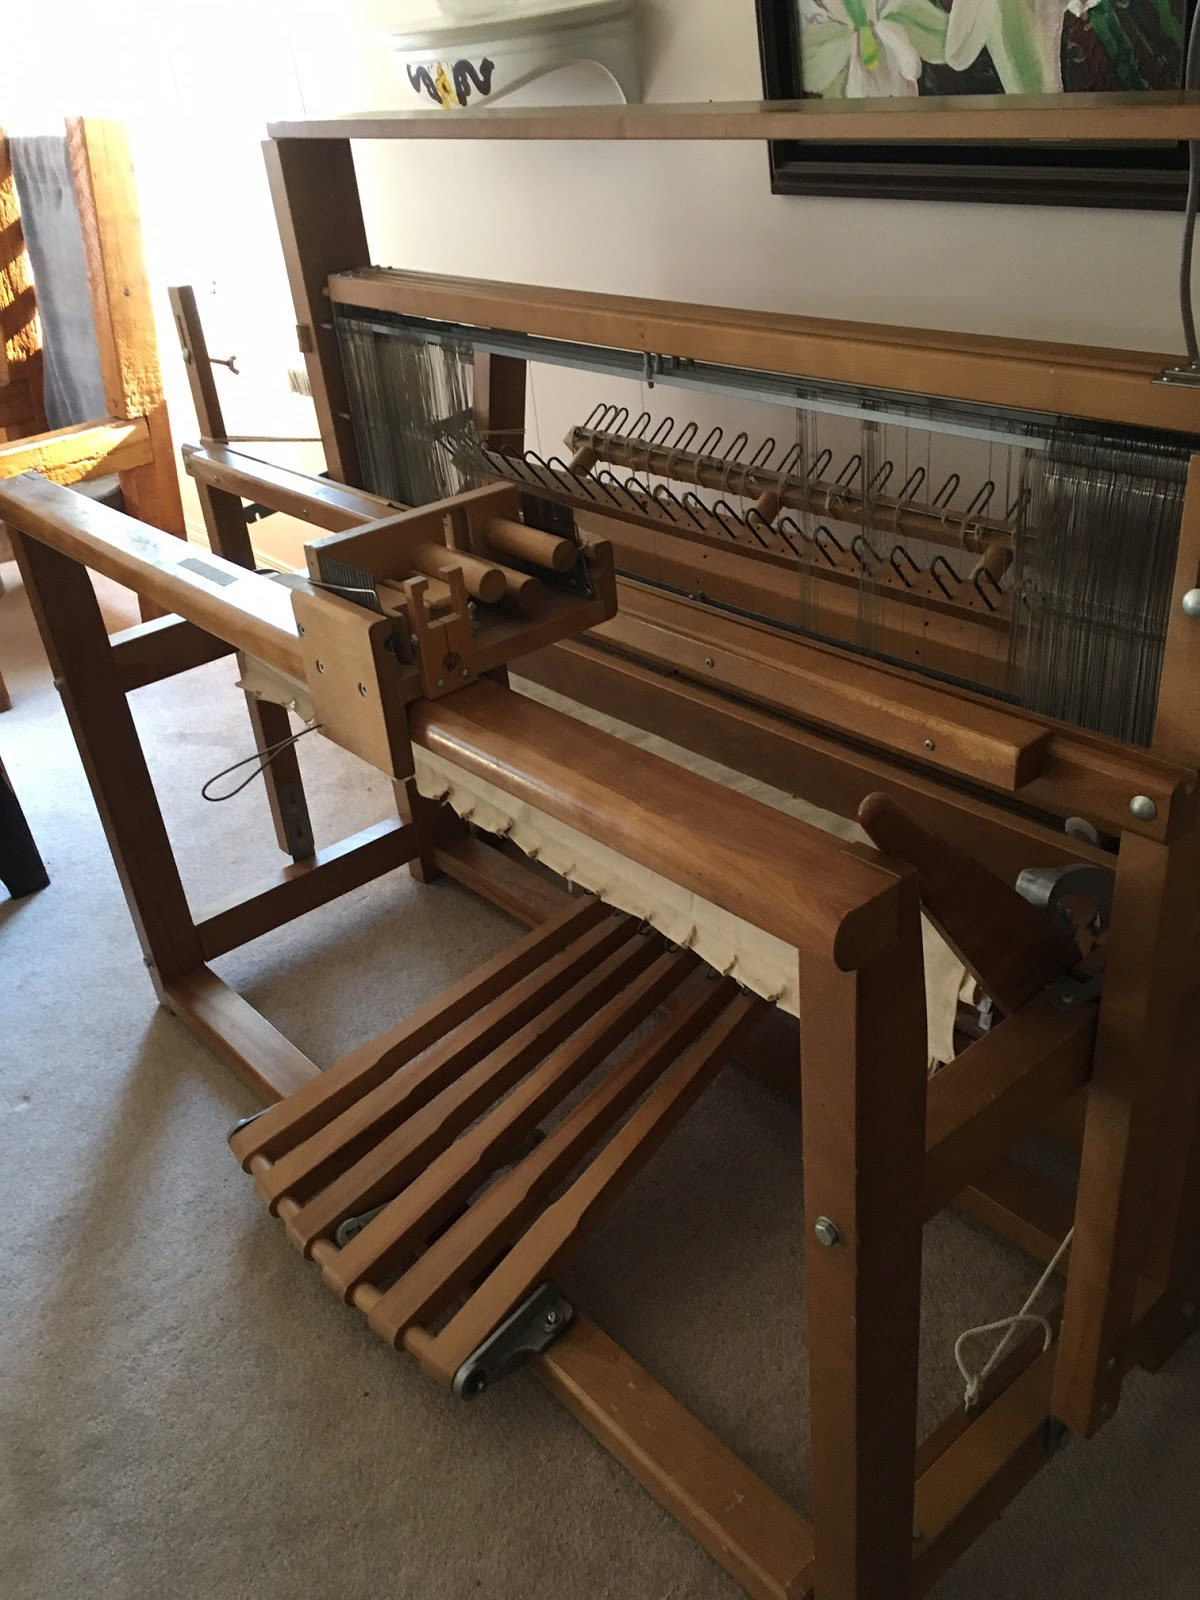 Shuswap Spinners and Weavers 2019: For Sale